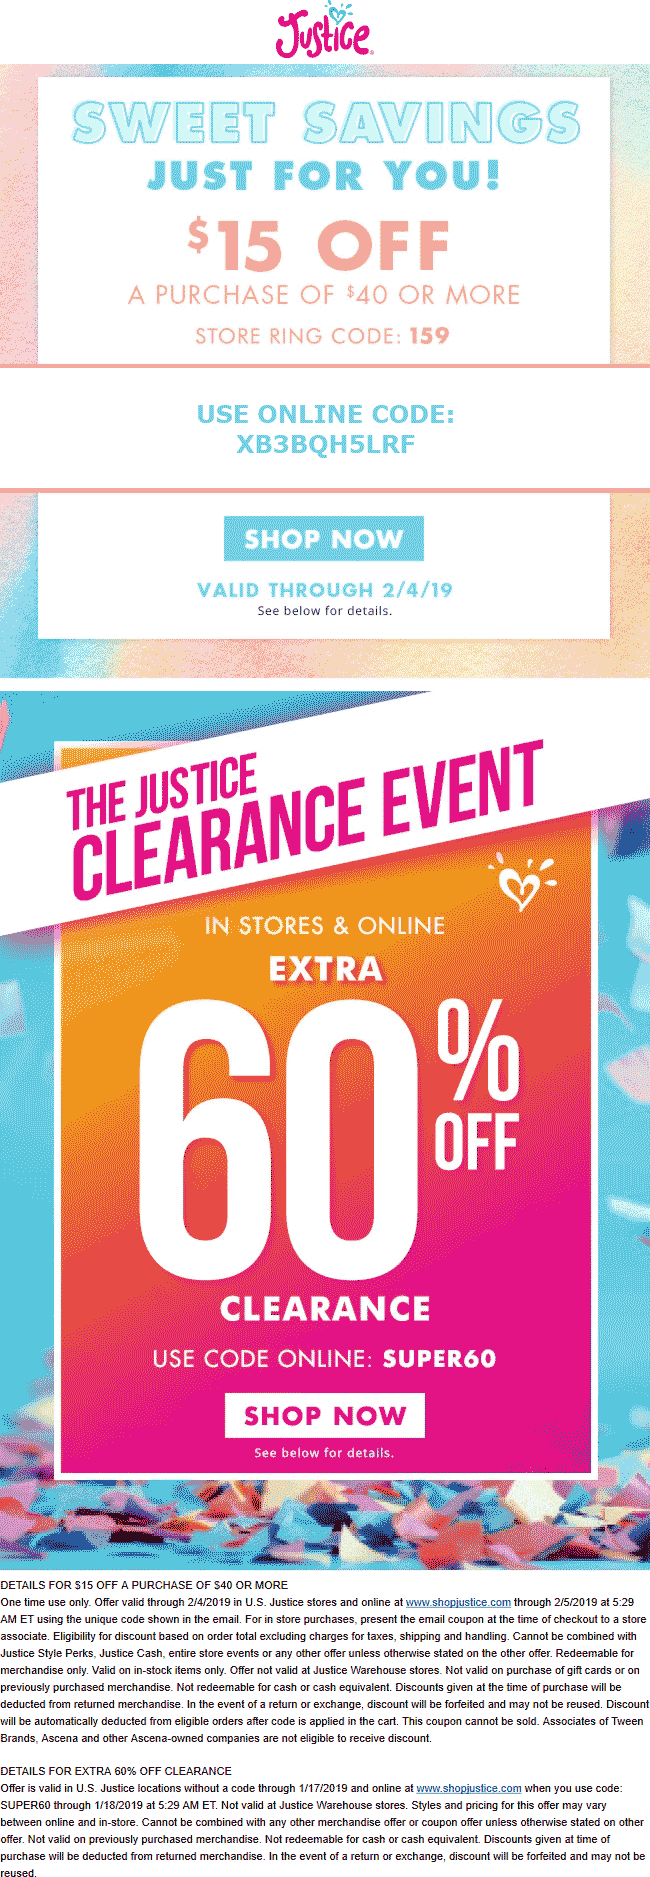 Justice.com Promo Coupon $15 off $40 at Justice, or online via promo code XB3BQH5LRF